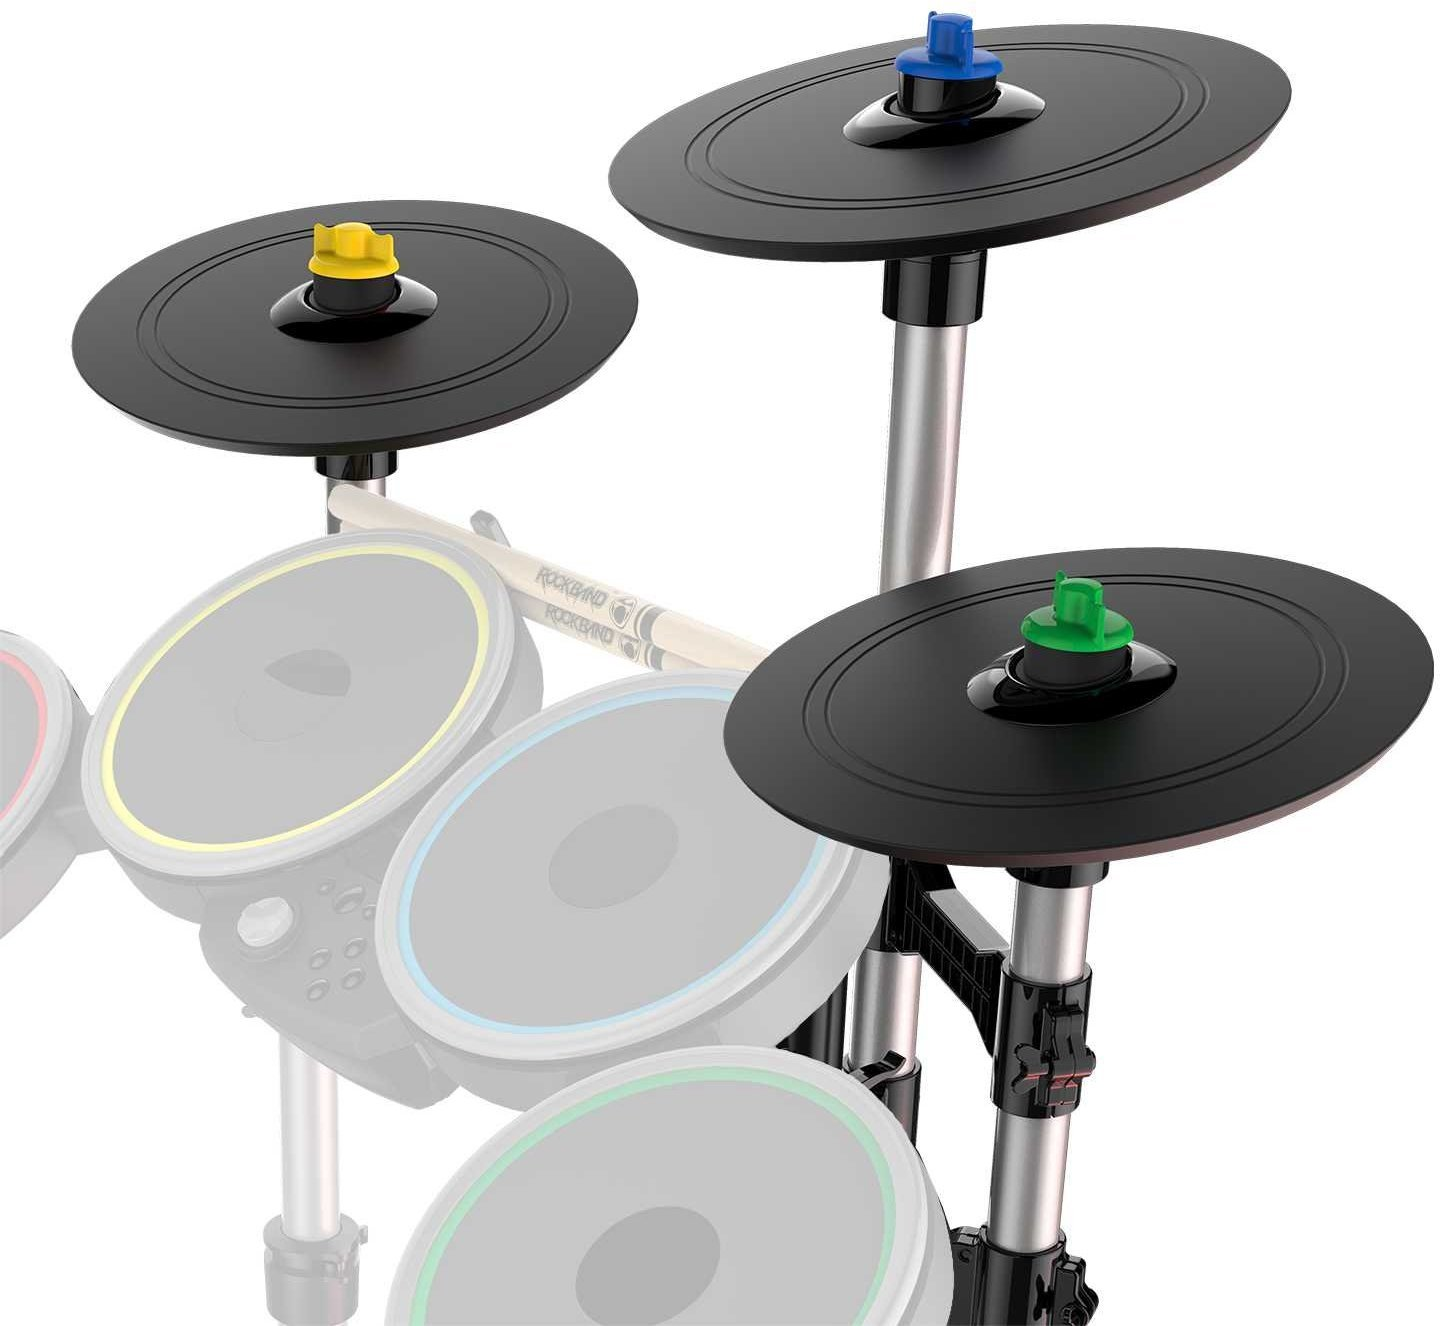 Rockband Pro-Cymbals Expansion Kit for Rock Band Rivals and Rock Band 4 Drum Kits by Harmonix